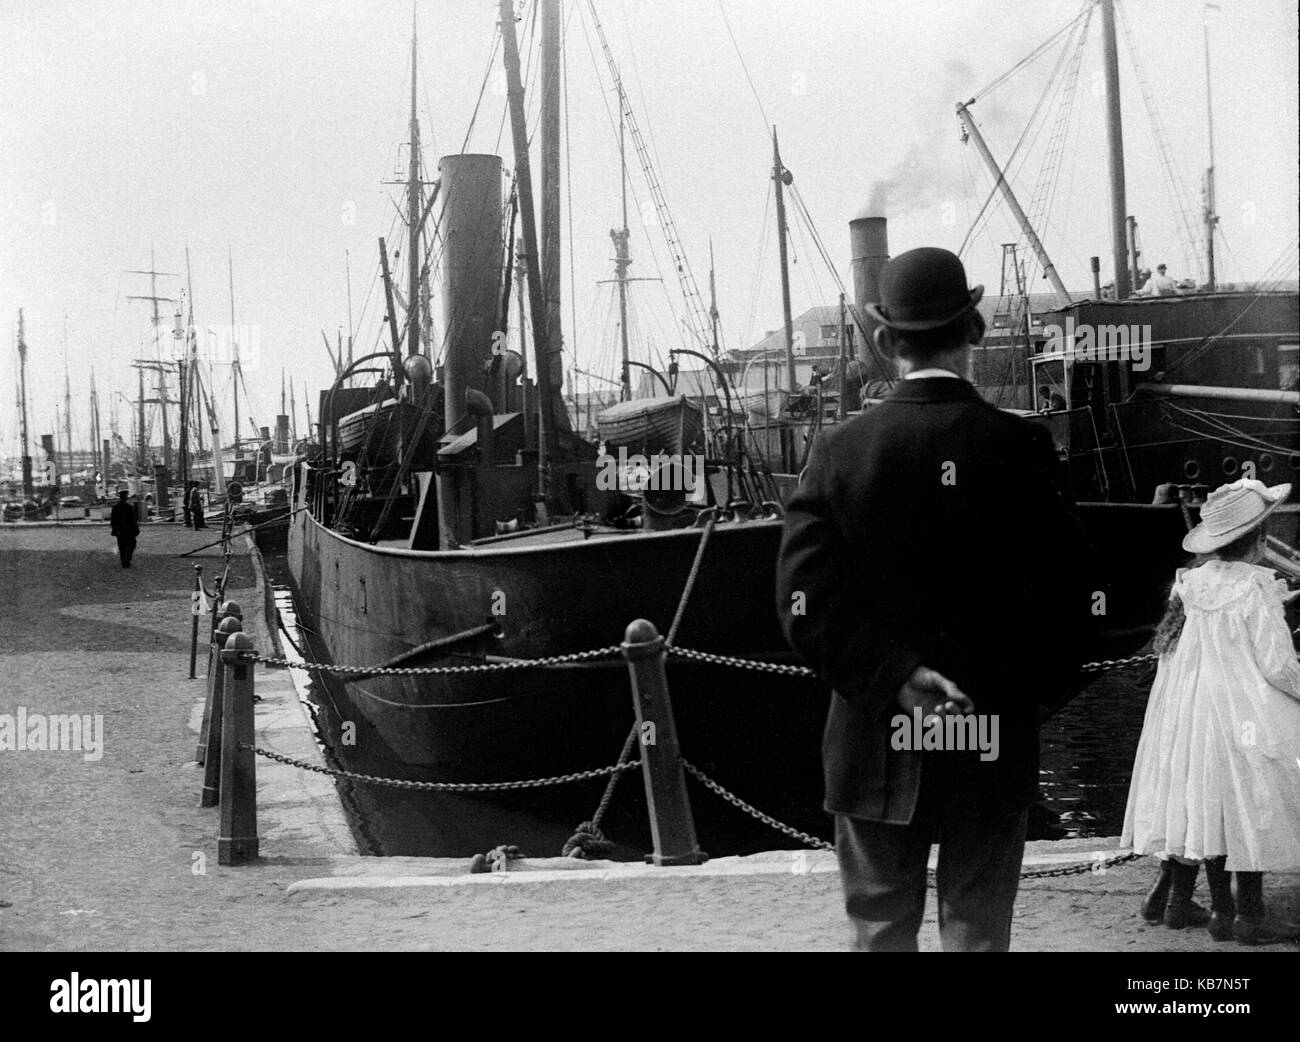 AJAXNETPHOTO. 1903. PORTSMOUTH, ENGLAND. - SHIPS MOORED IN CAMBER DOCK, OLD PORTSMOUTH.PHOTOGRAPHER:UNKNOWN© - Stock Image